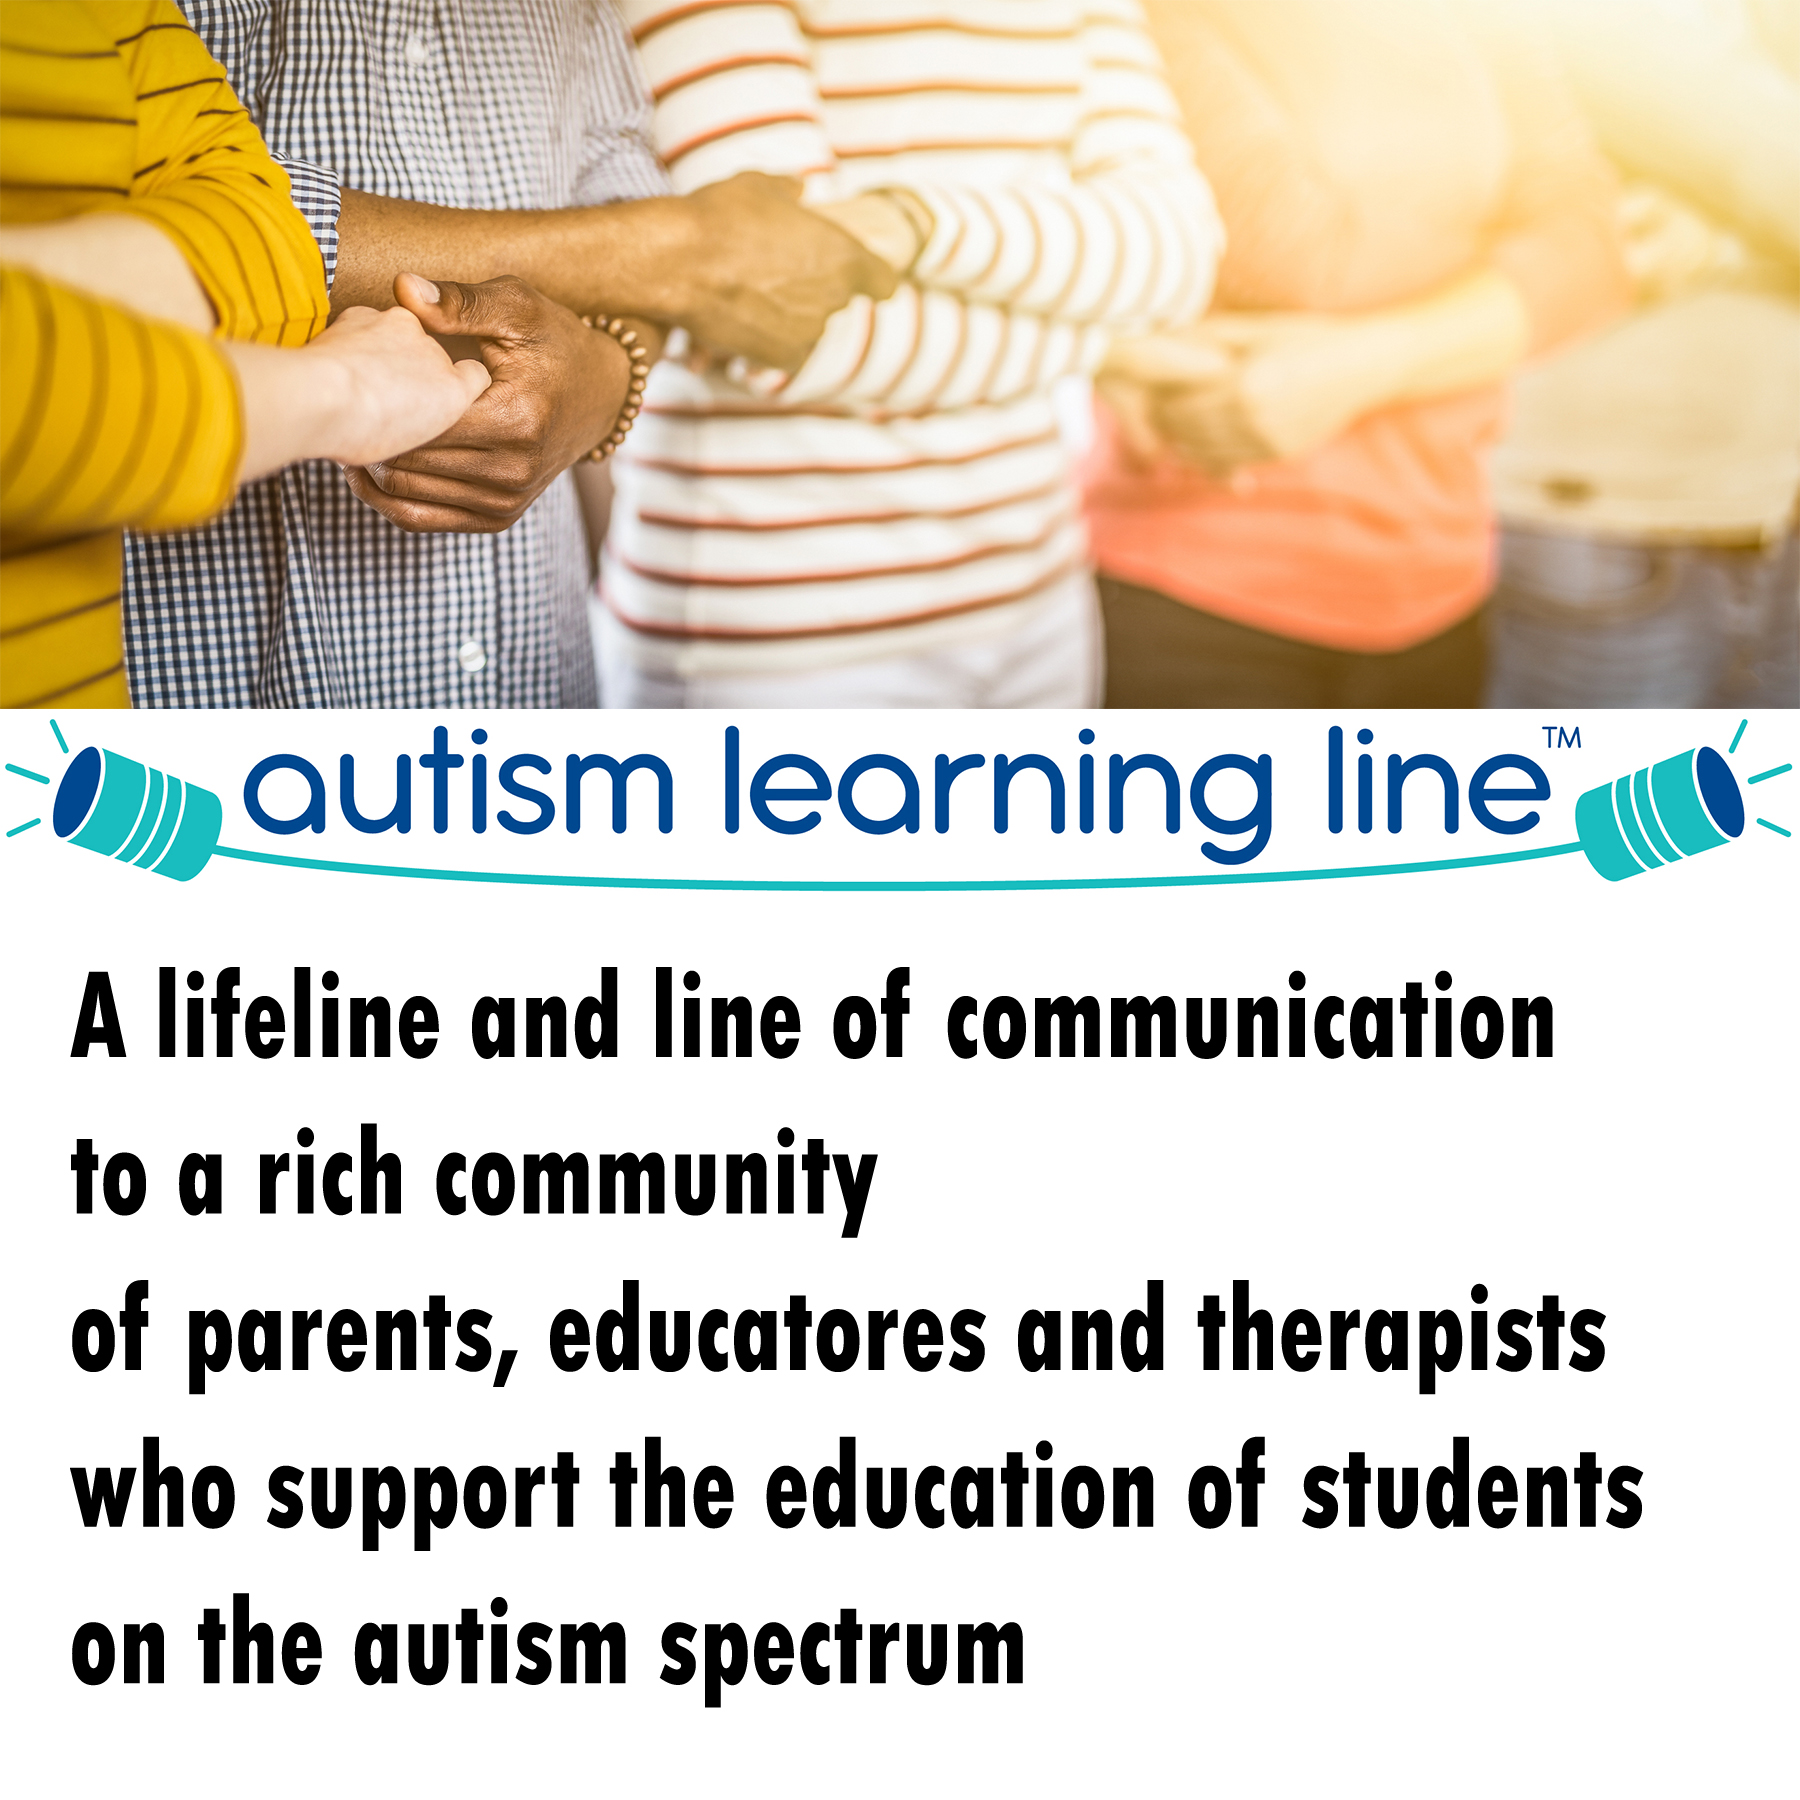 Join our Autism Learning Line community